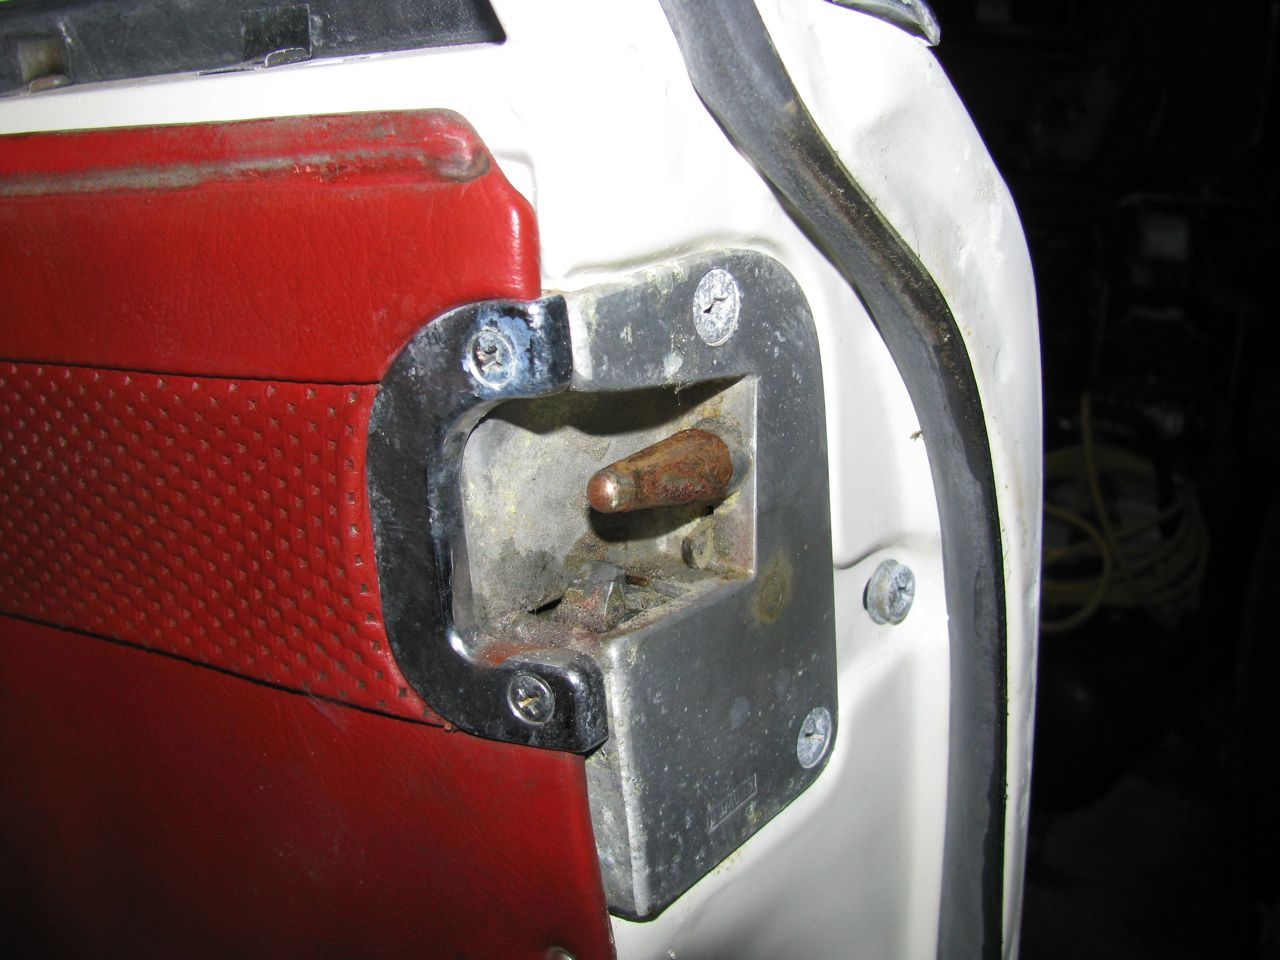 car door latch striker. Look At The Corrosion On Centering Pin And Door Striker In Pictures Below. They Were Literally Rusted Together. It Took A Heavy Shoulder Bump From Car Latch 0